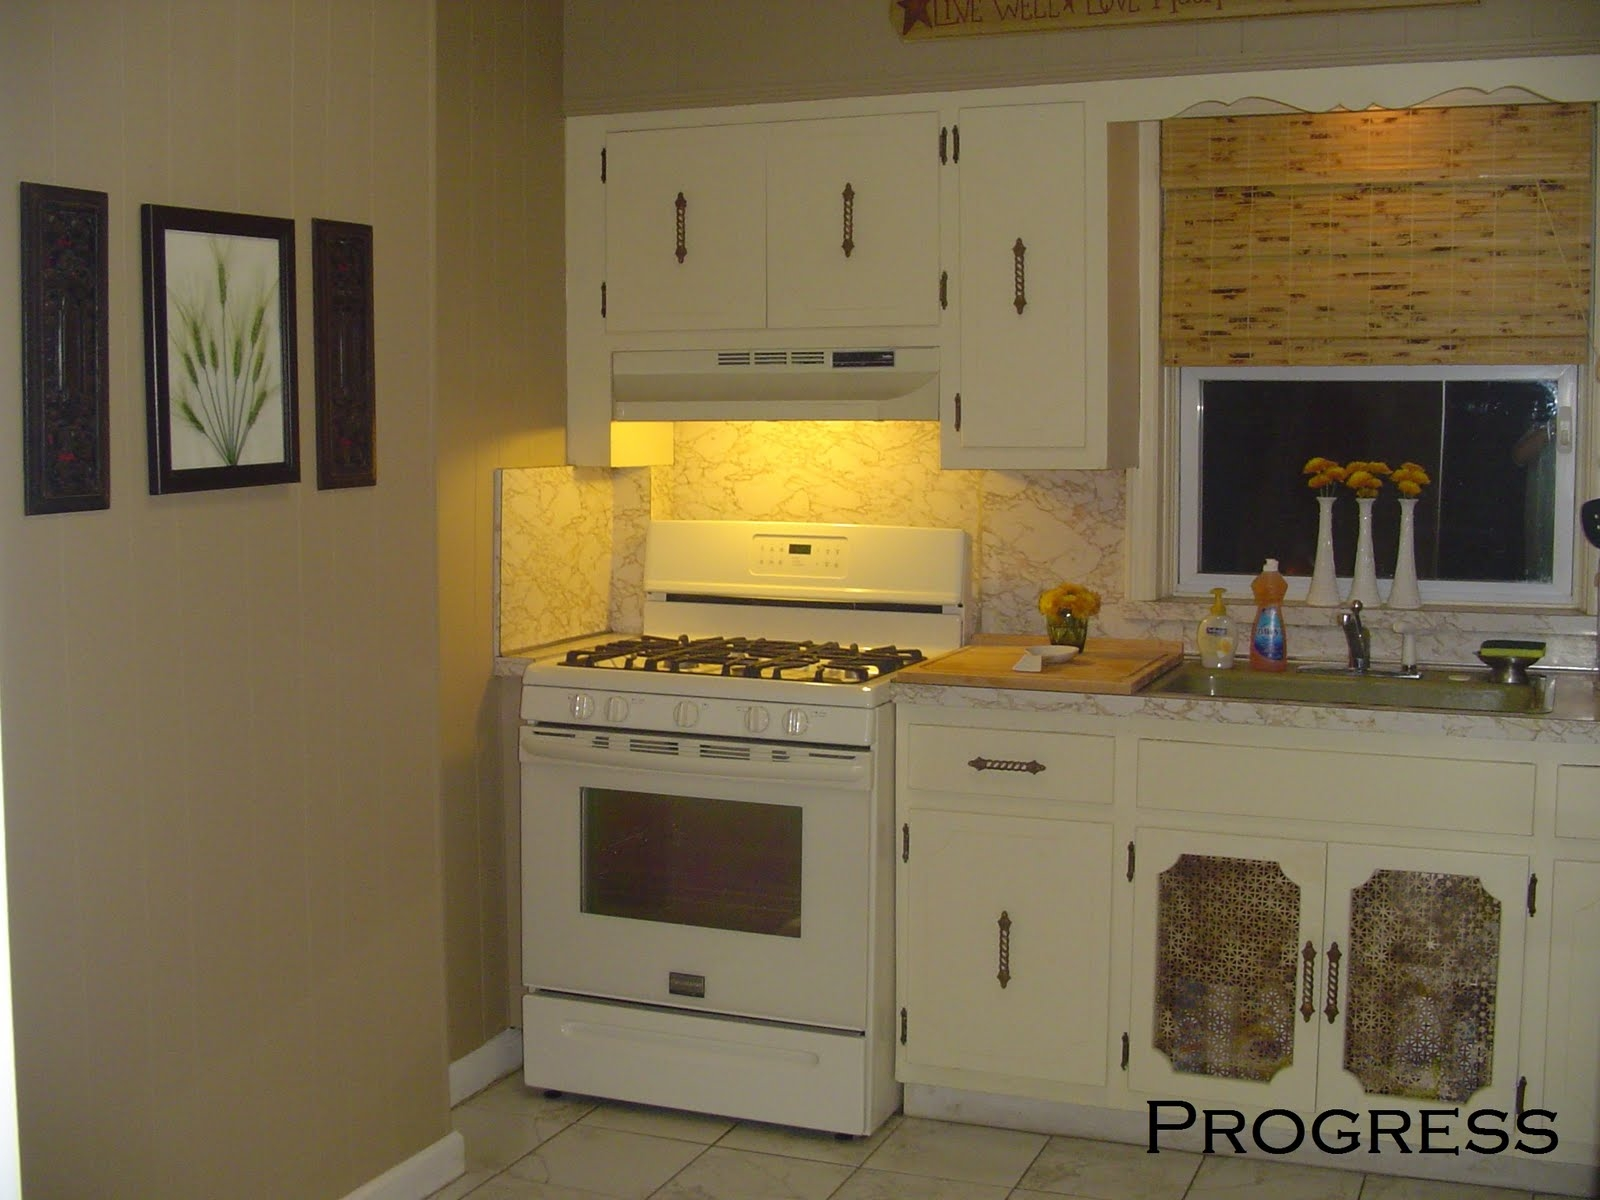 Modifying Kitchen Cabinets For A Dishwasher